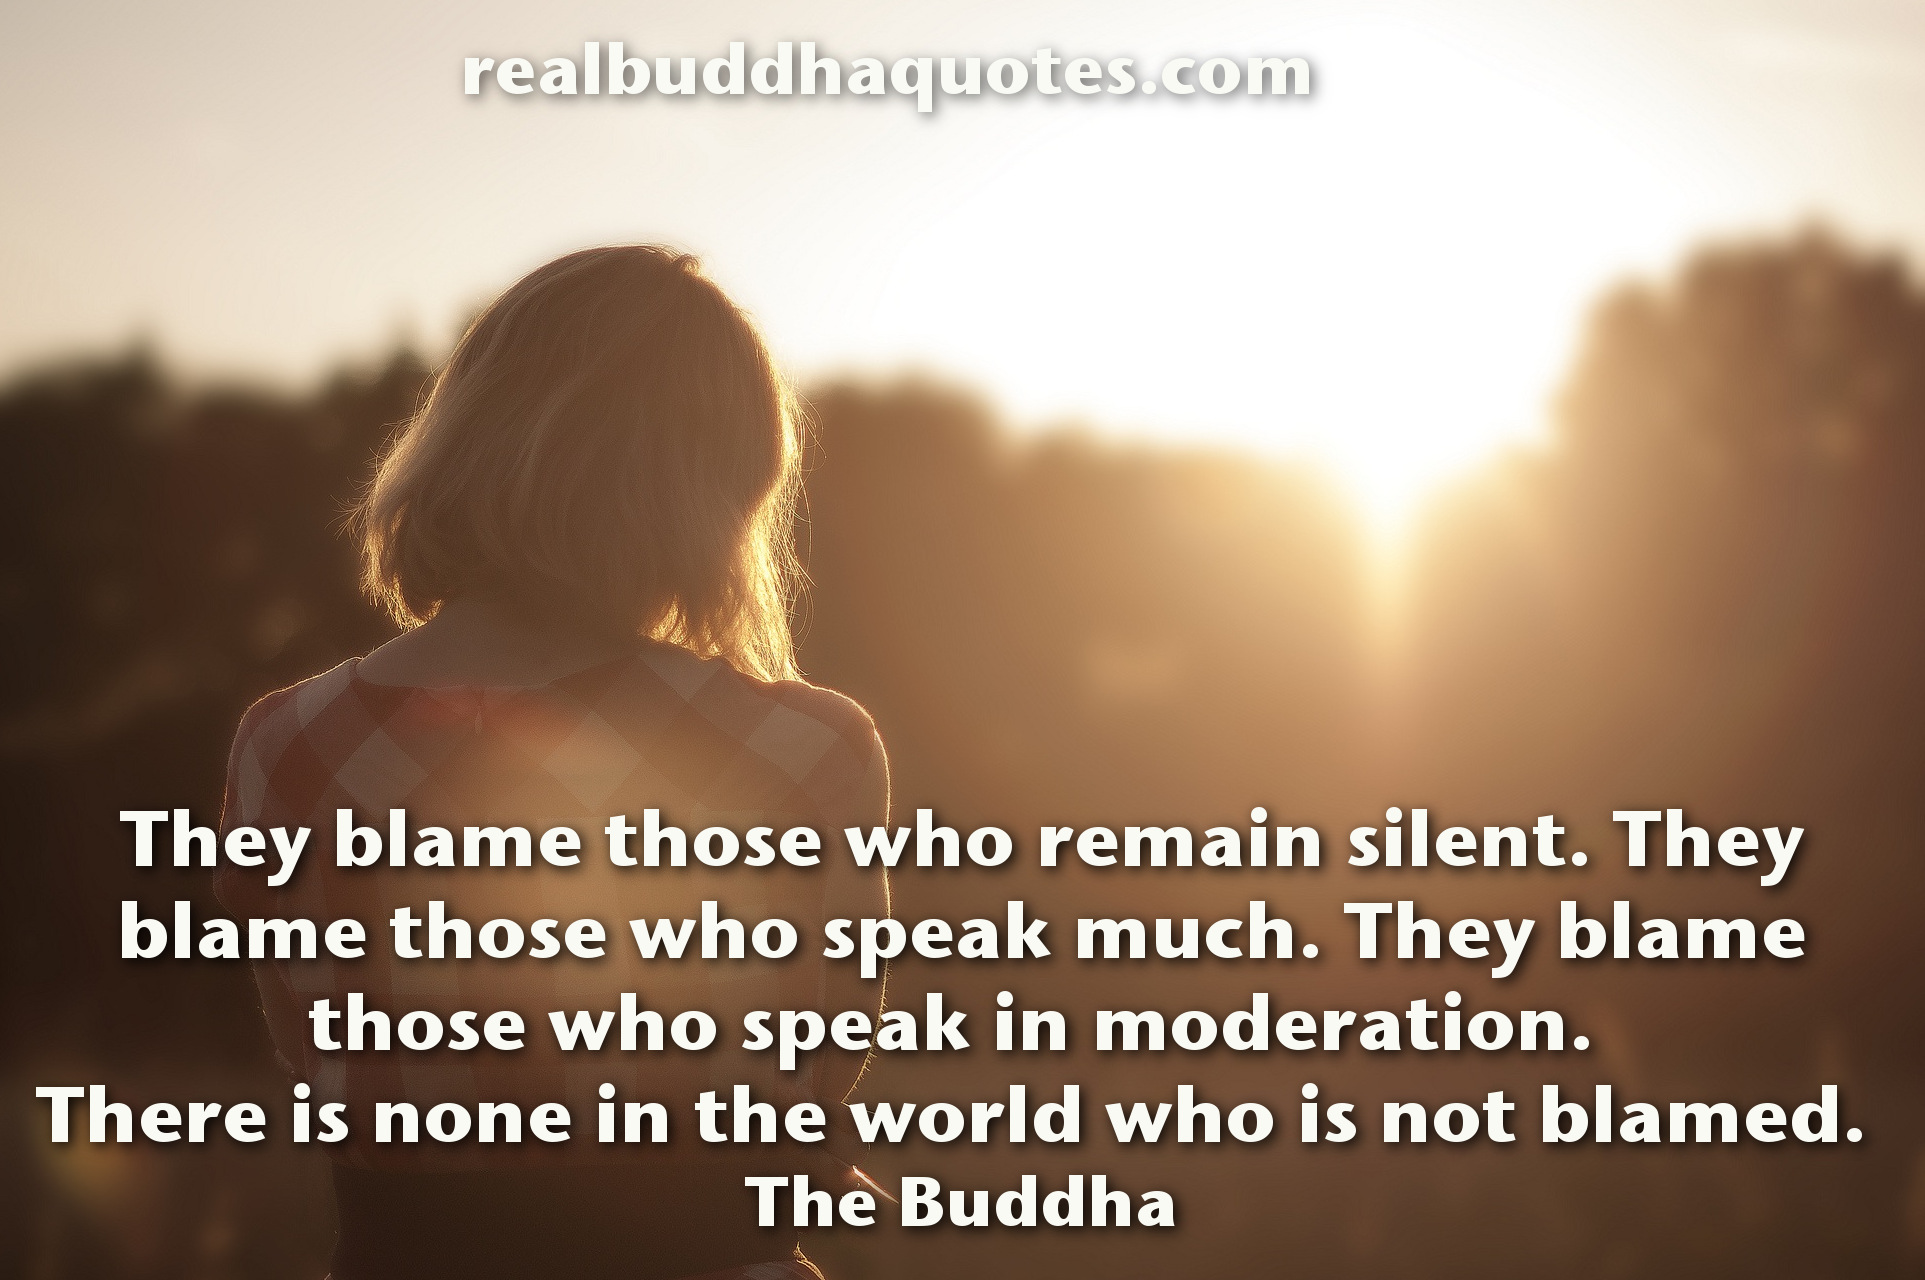 Buddha Quotes About Love Blame  Real Buddha Quotes